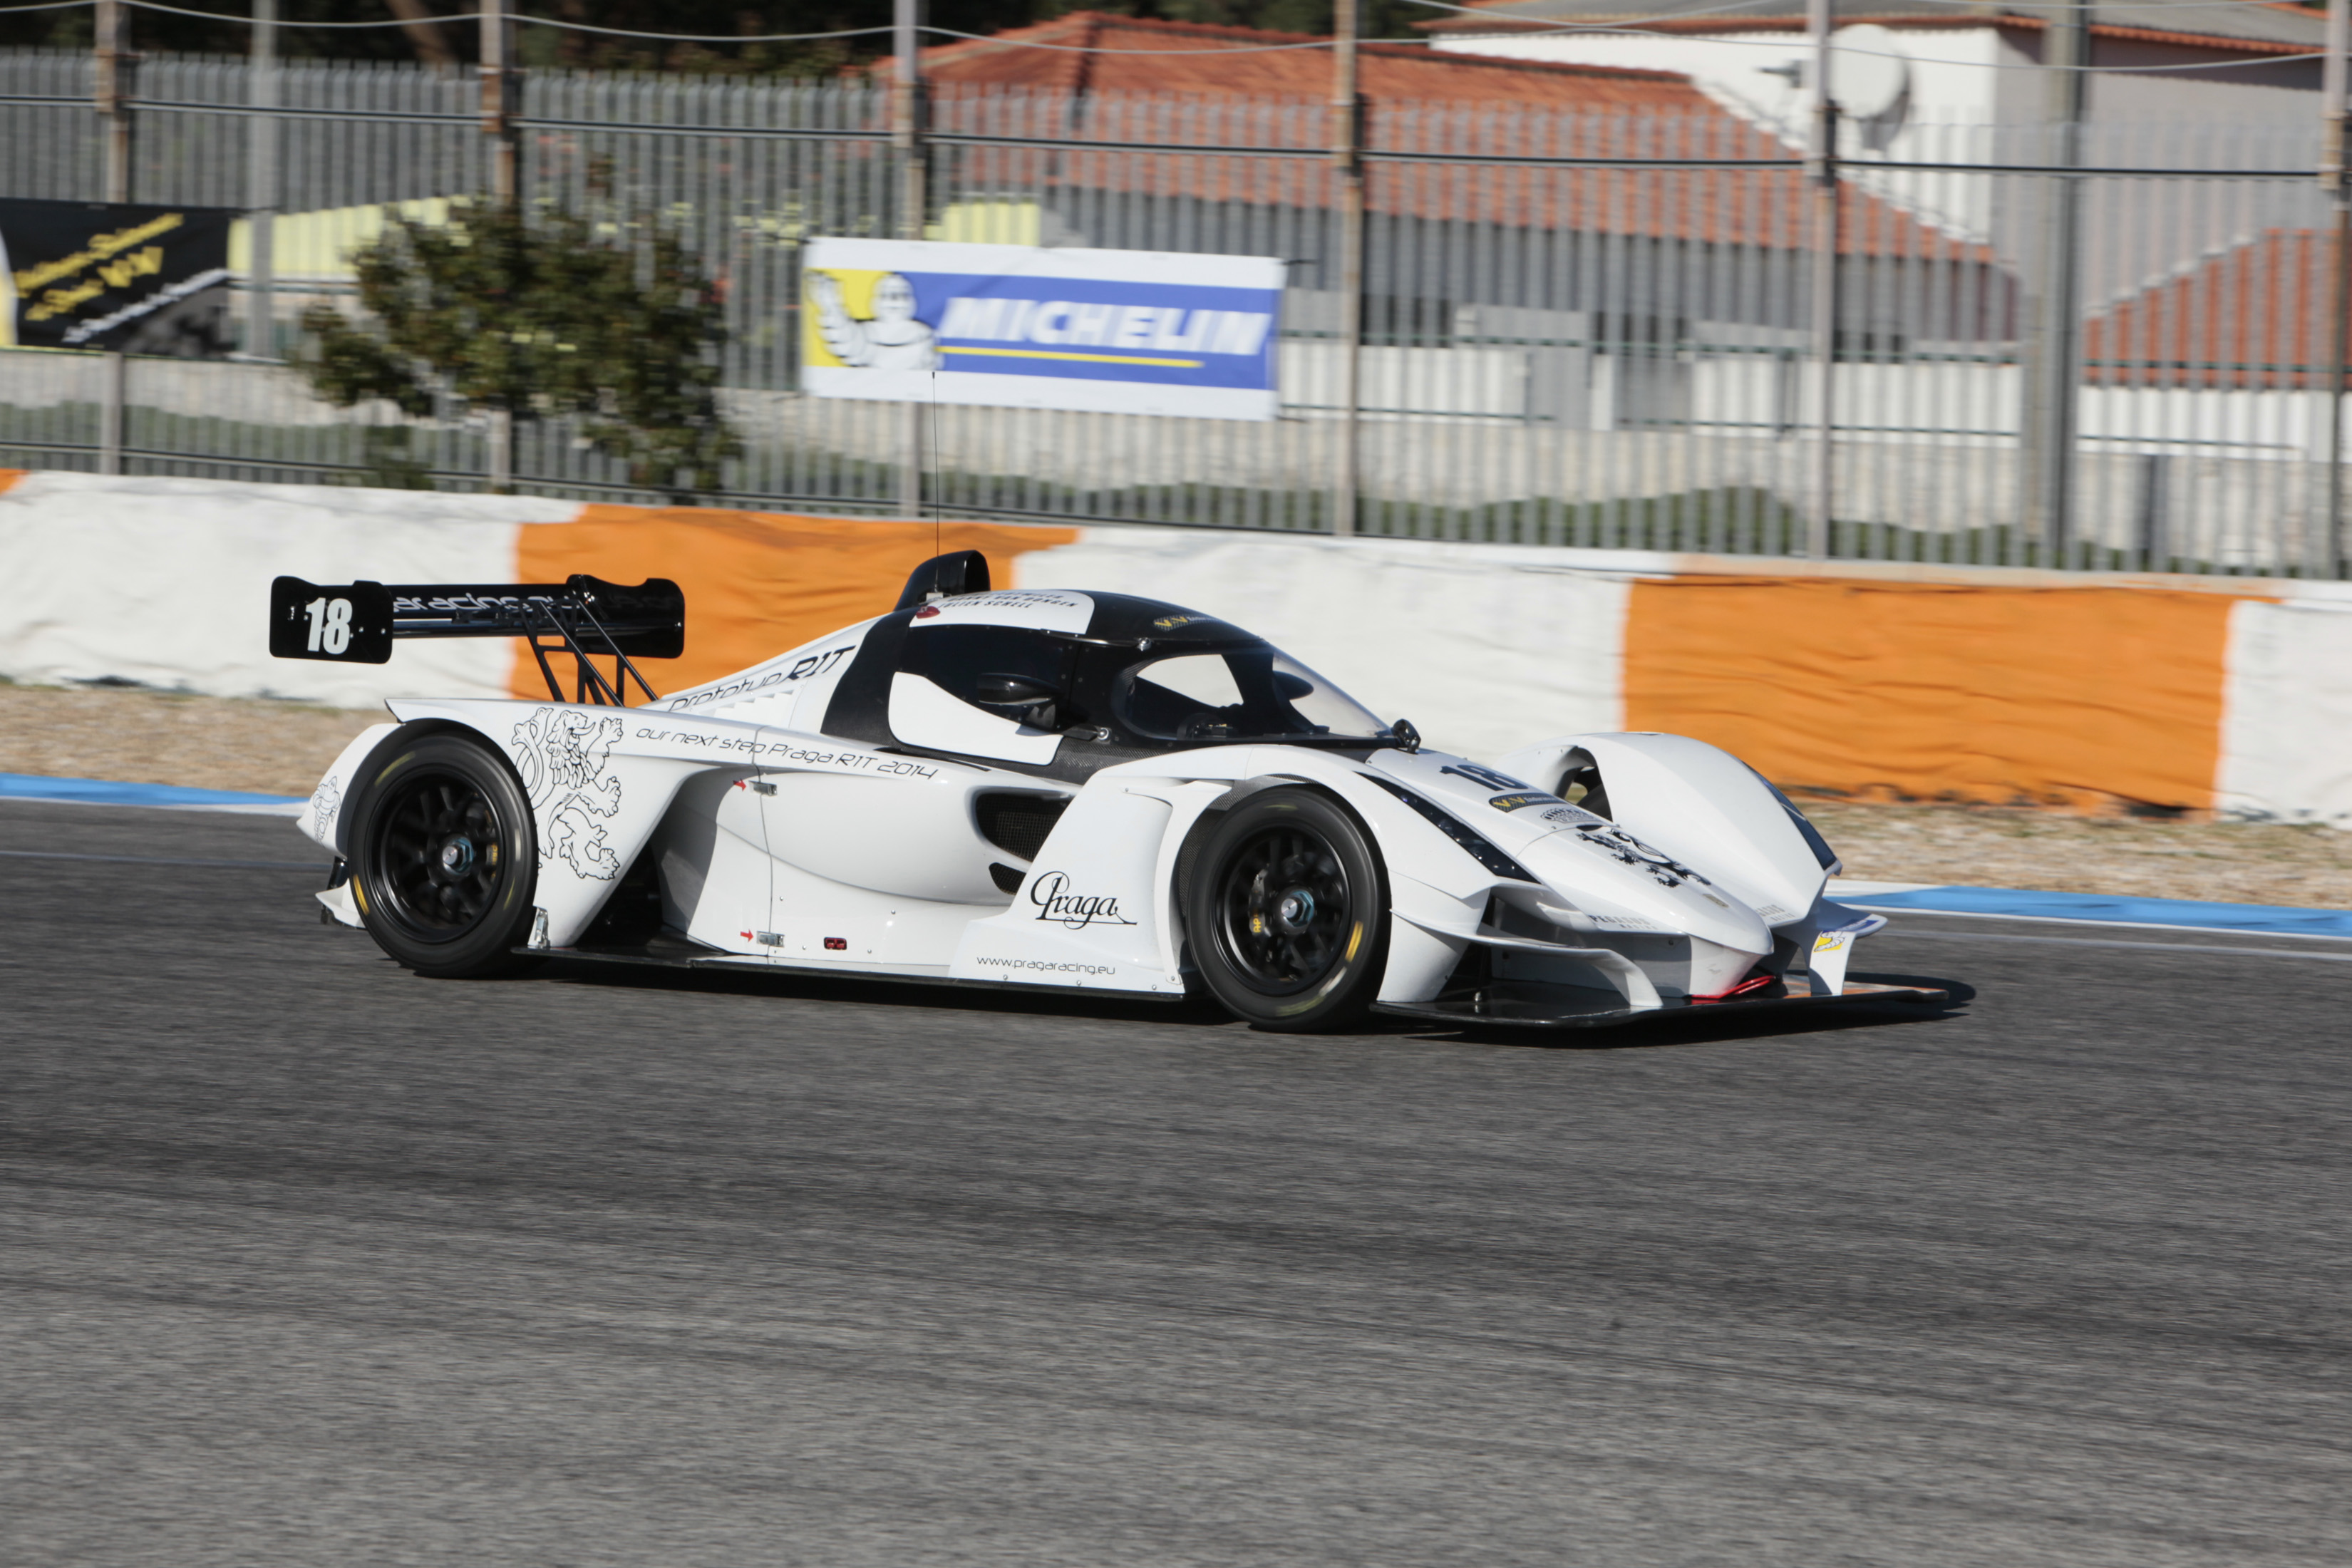 Vde V 2013 a ESTORIL - la PRAGA R1 Photo Maurice CAMUS